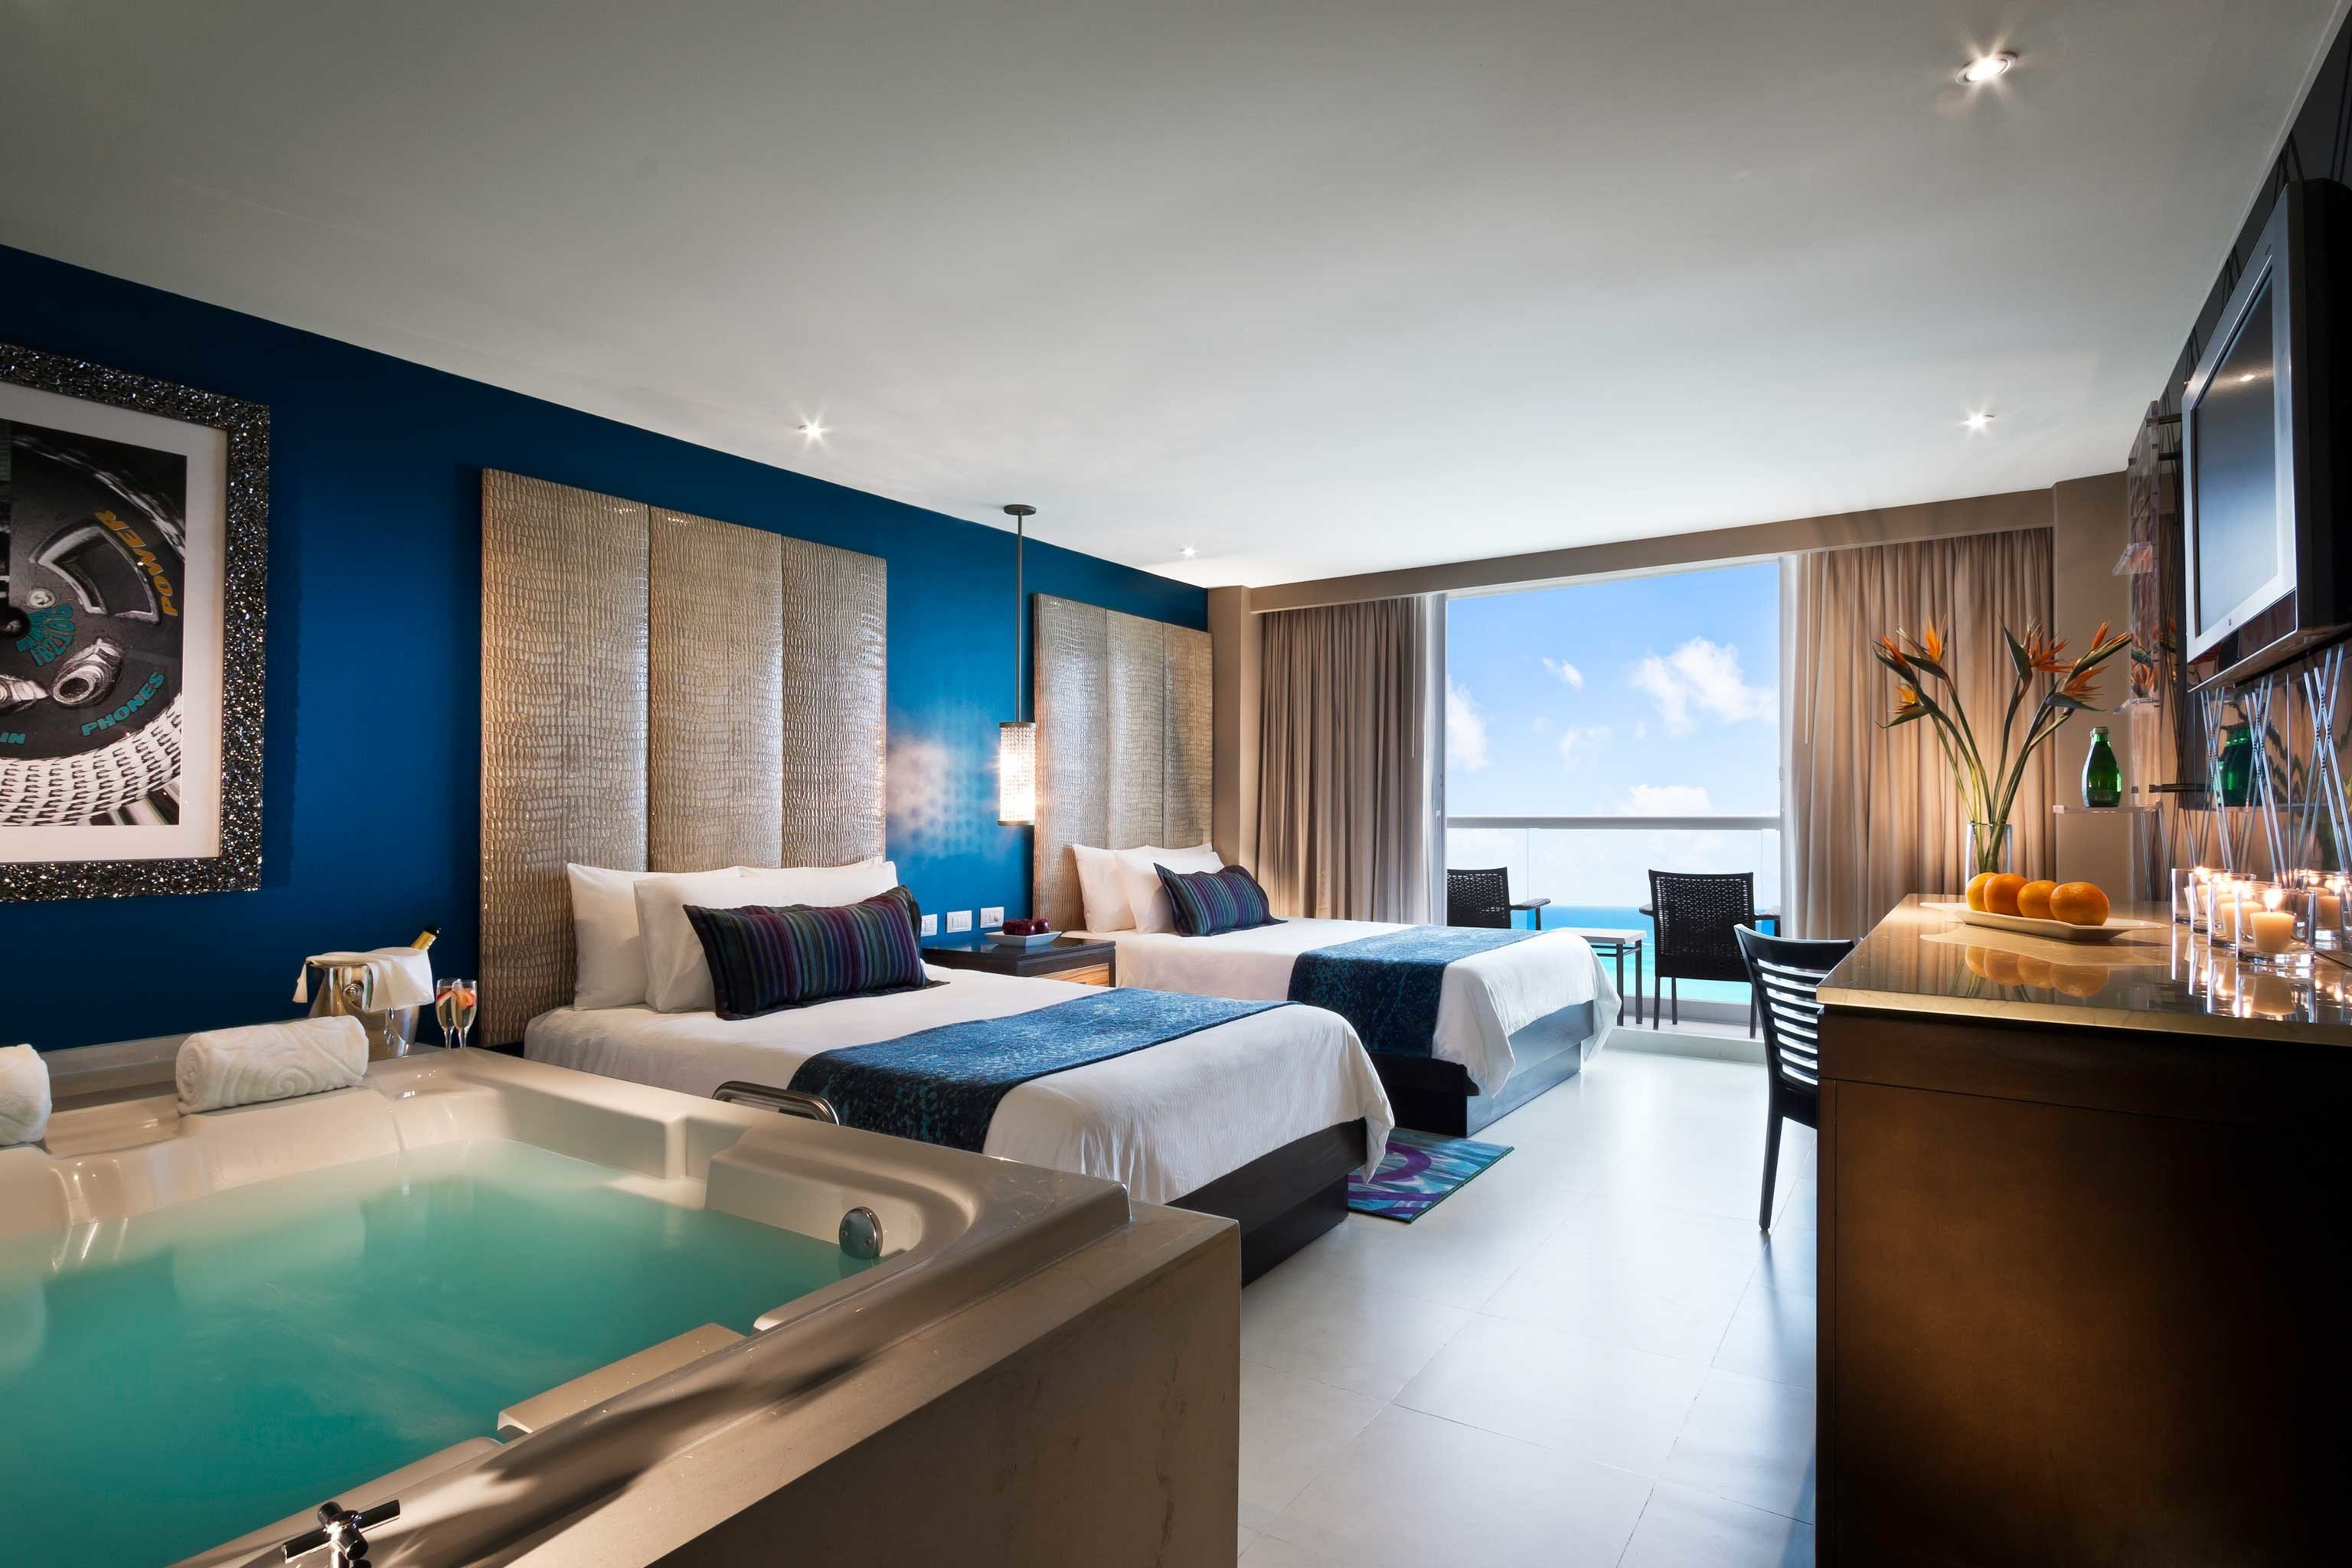 Bedroom Modern Party Resort property living room Suite condominium Villa home swimming pool